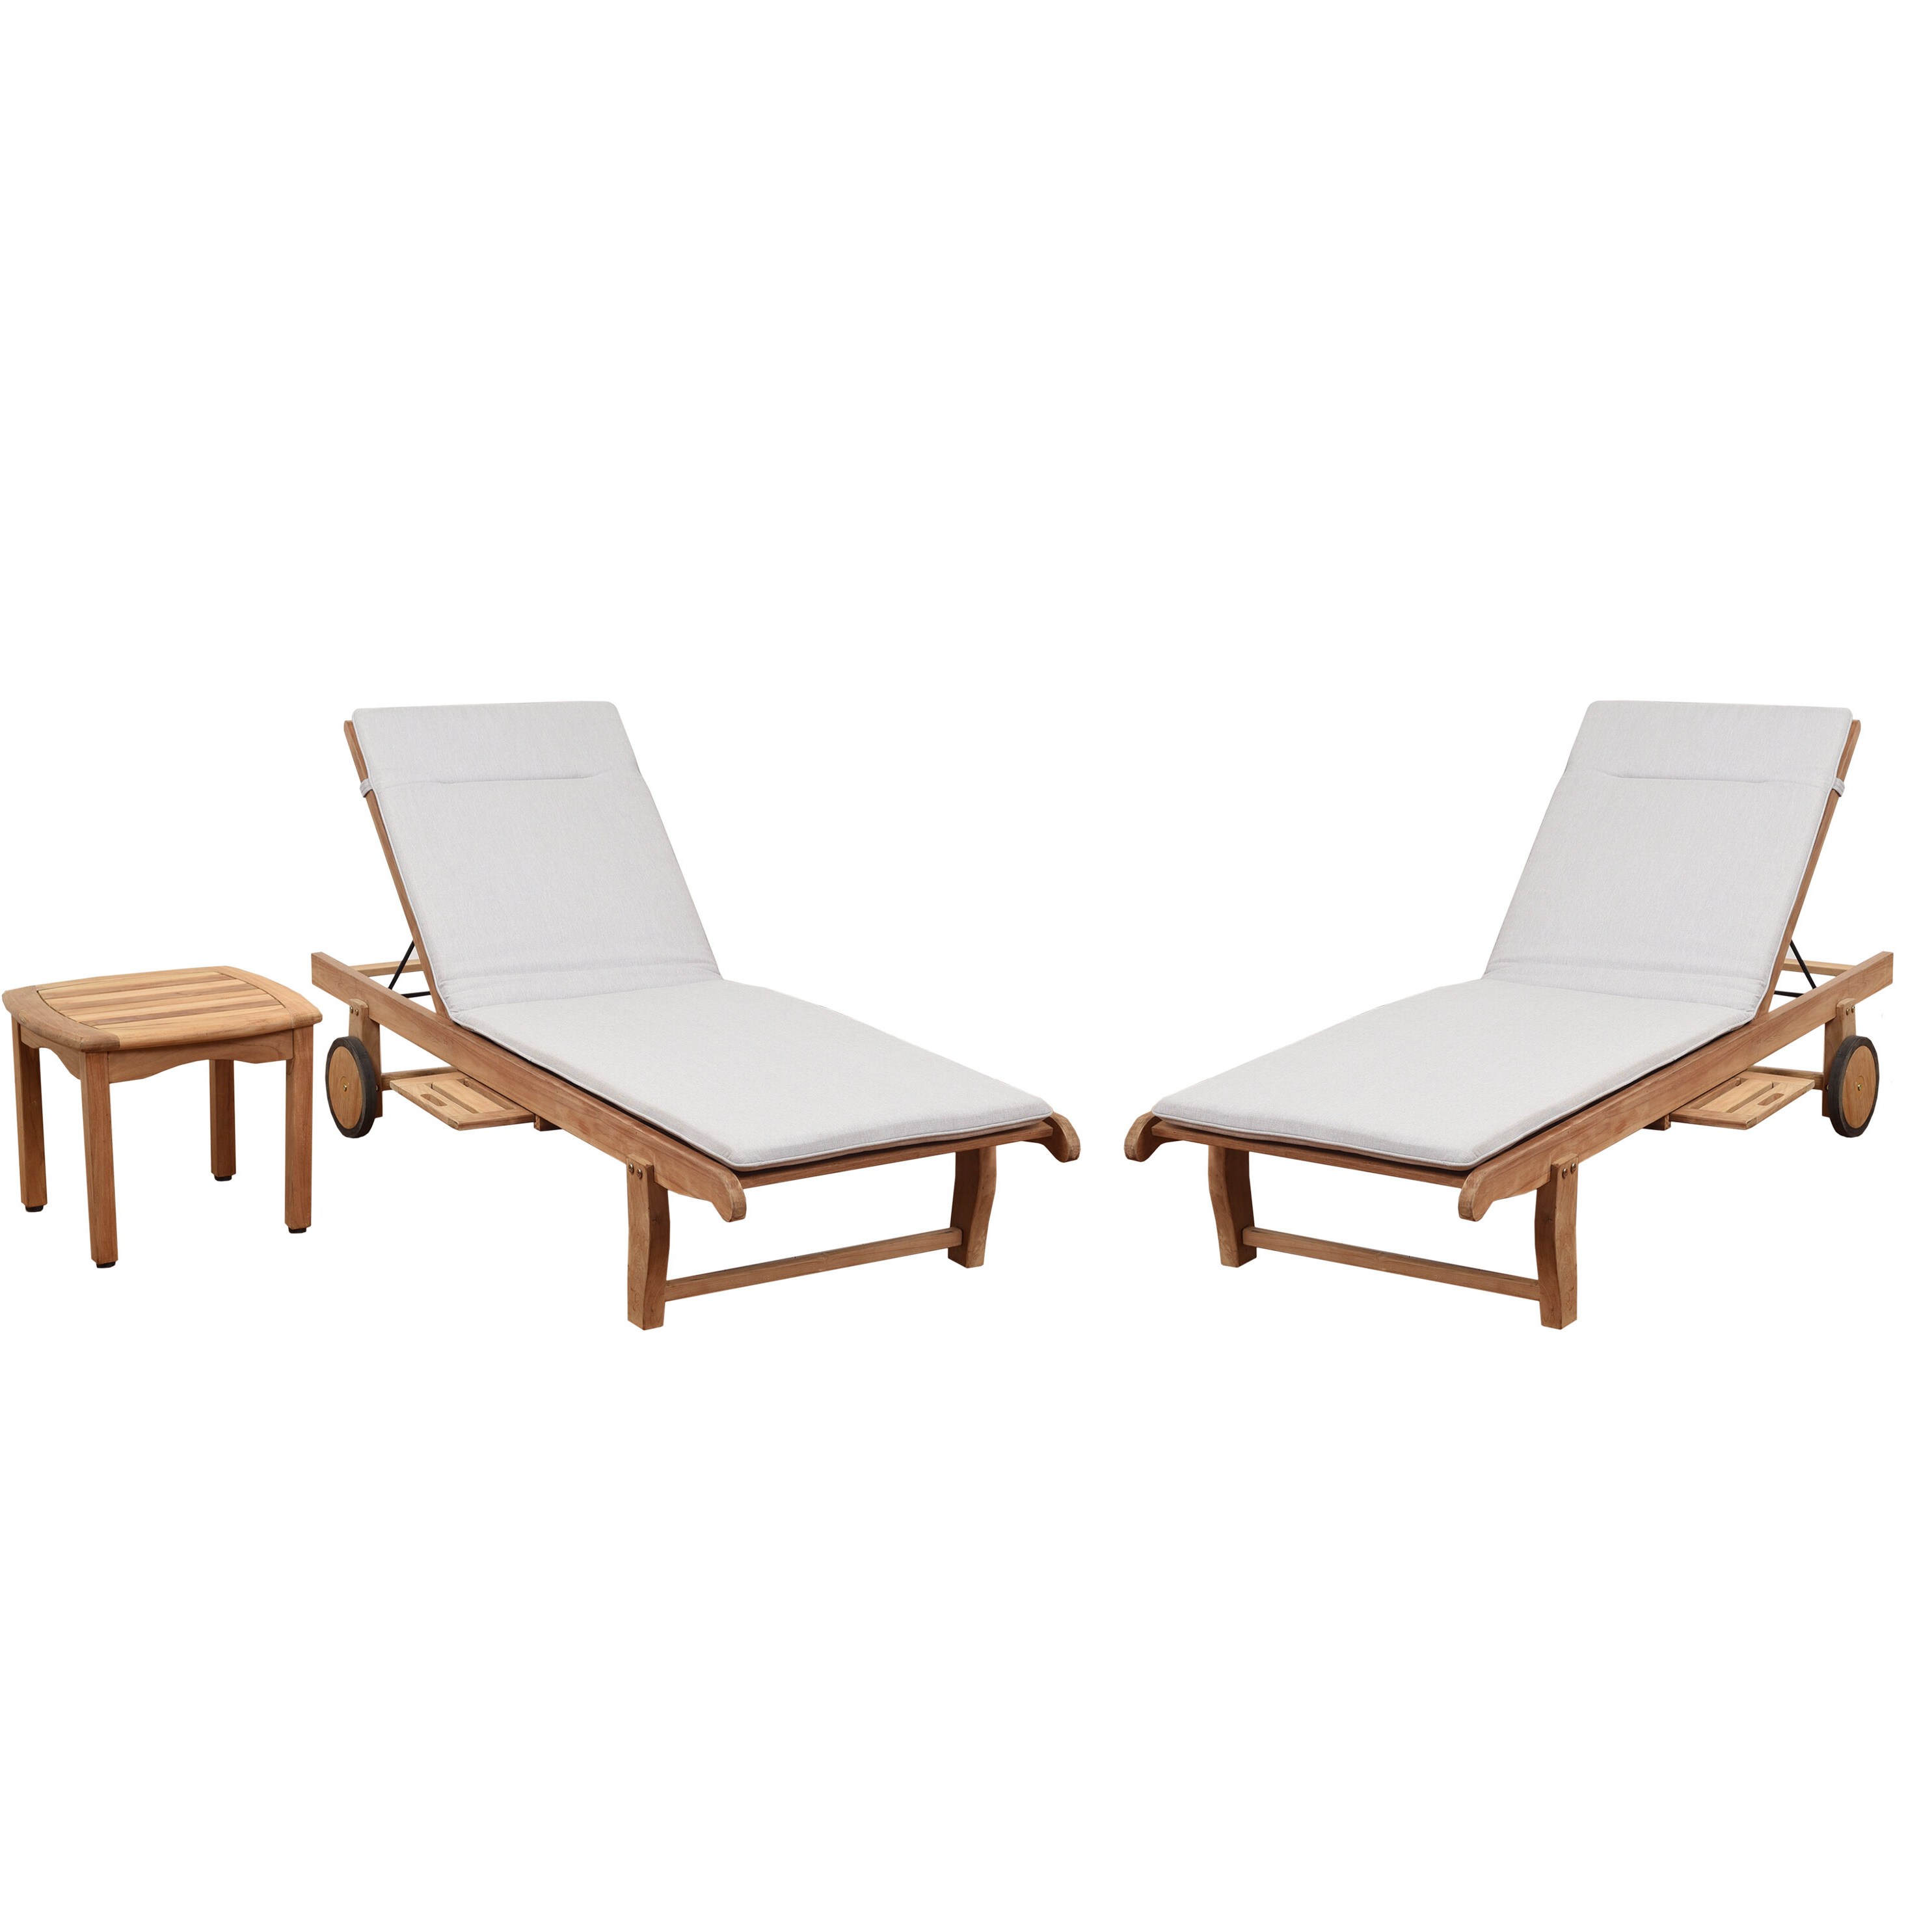 Well Known Brighton Sun Lounger Reclining Teak Chaise Lounge With Cushion And Table Within Teak Chaise Loungers (Gallery 2 of 25)